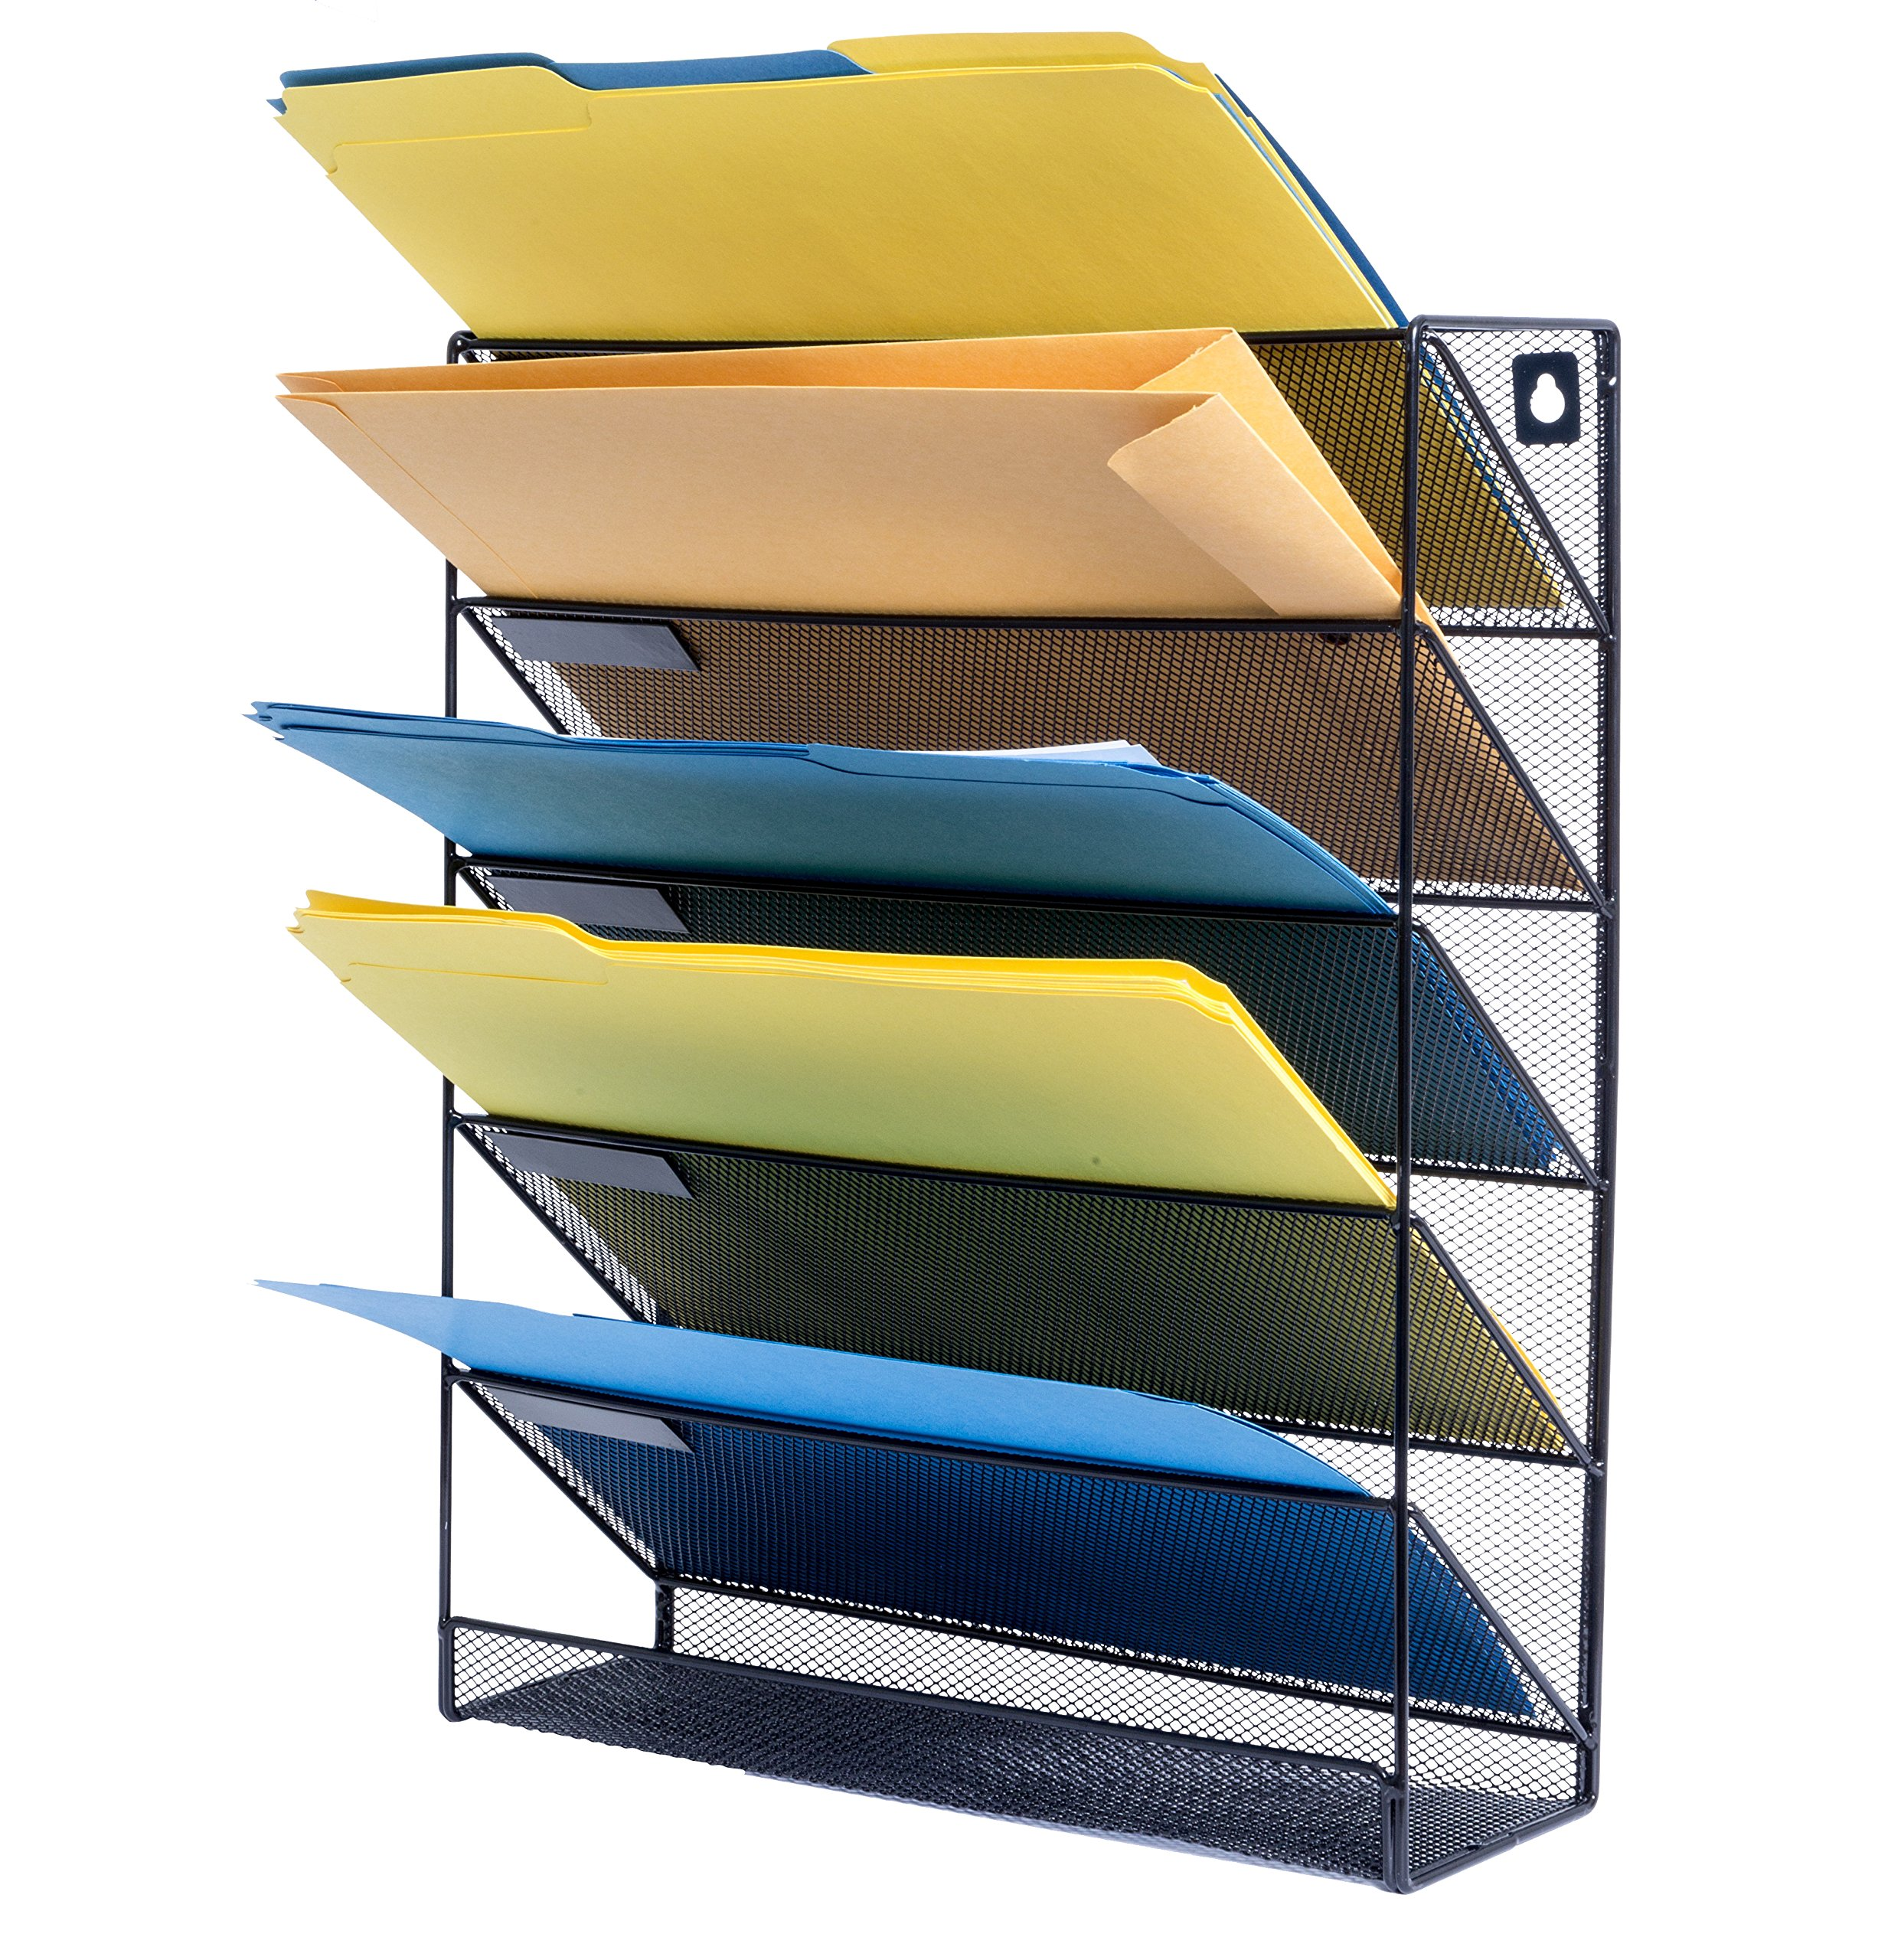 5 Tray Wall File Organizer, Metal Mesh Organizer with 5 Trays, Perfect for sorting incoming mail, storing important letter files, folders, papers, books, binders, and more